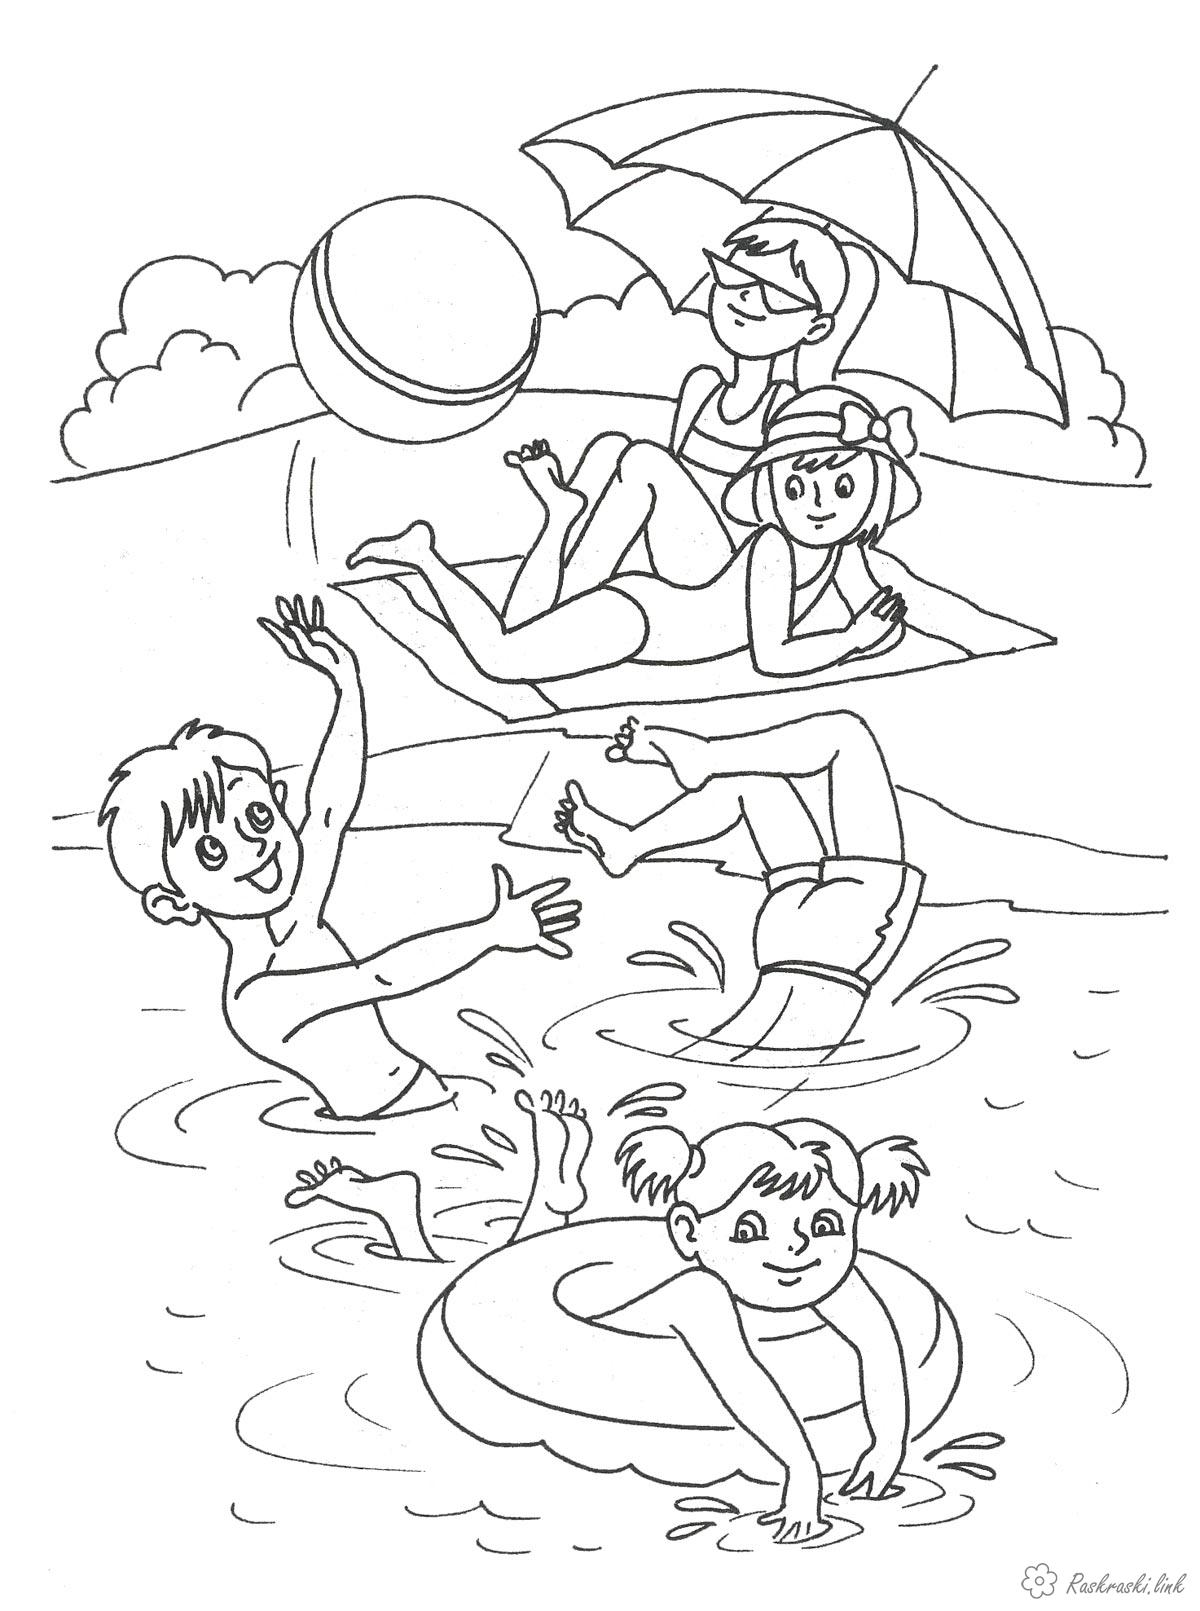 Coloring Seasons coloring pages about summer, summer kraskraski